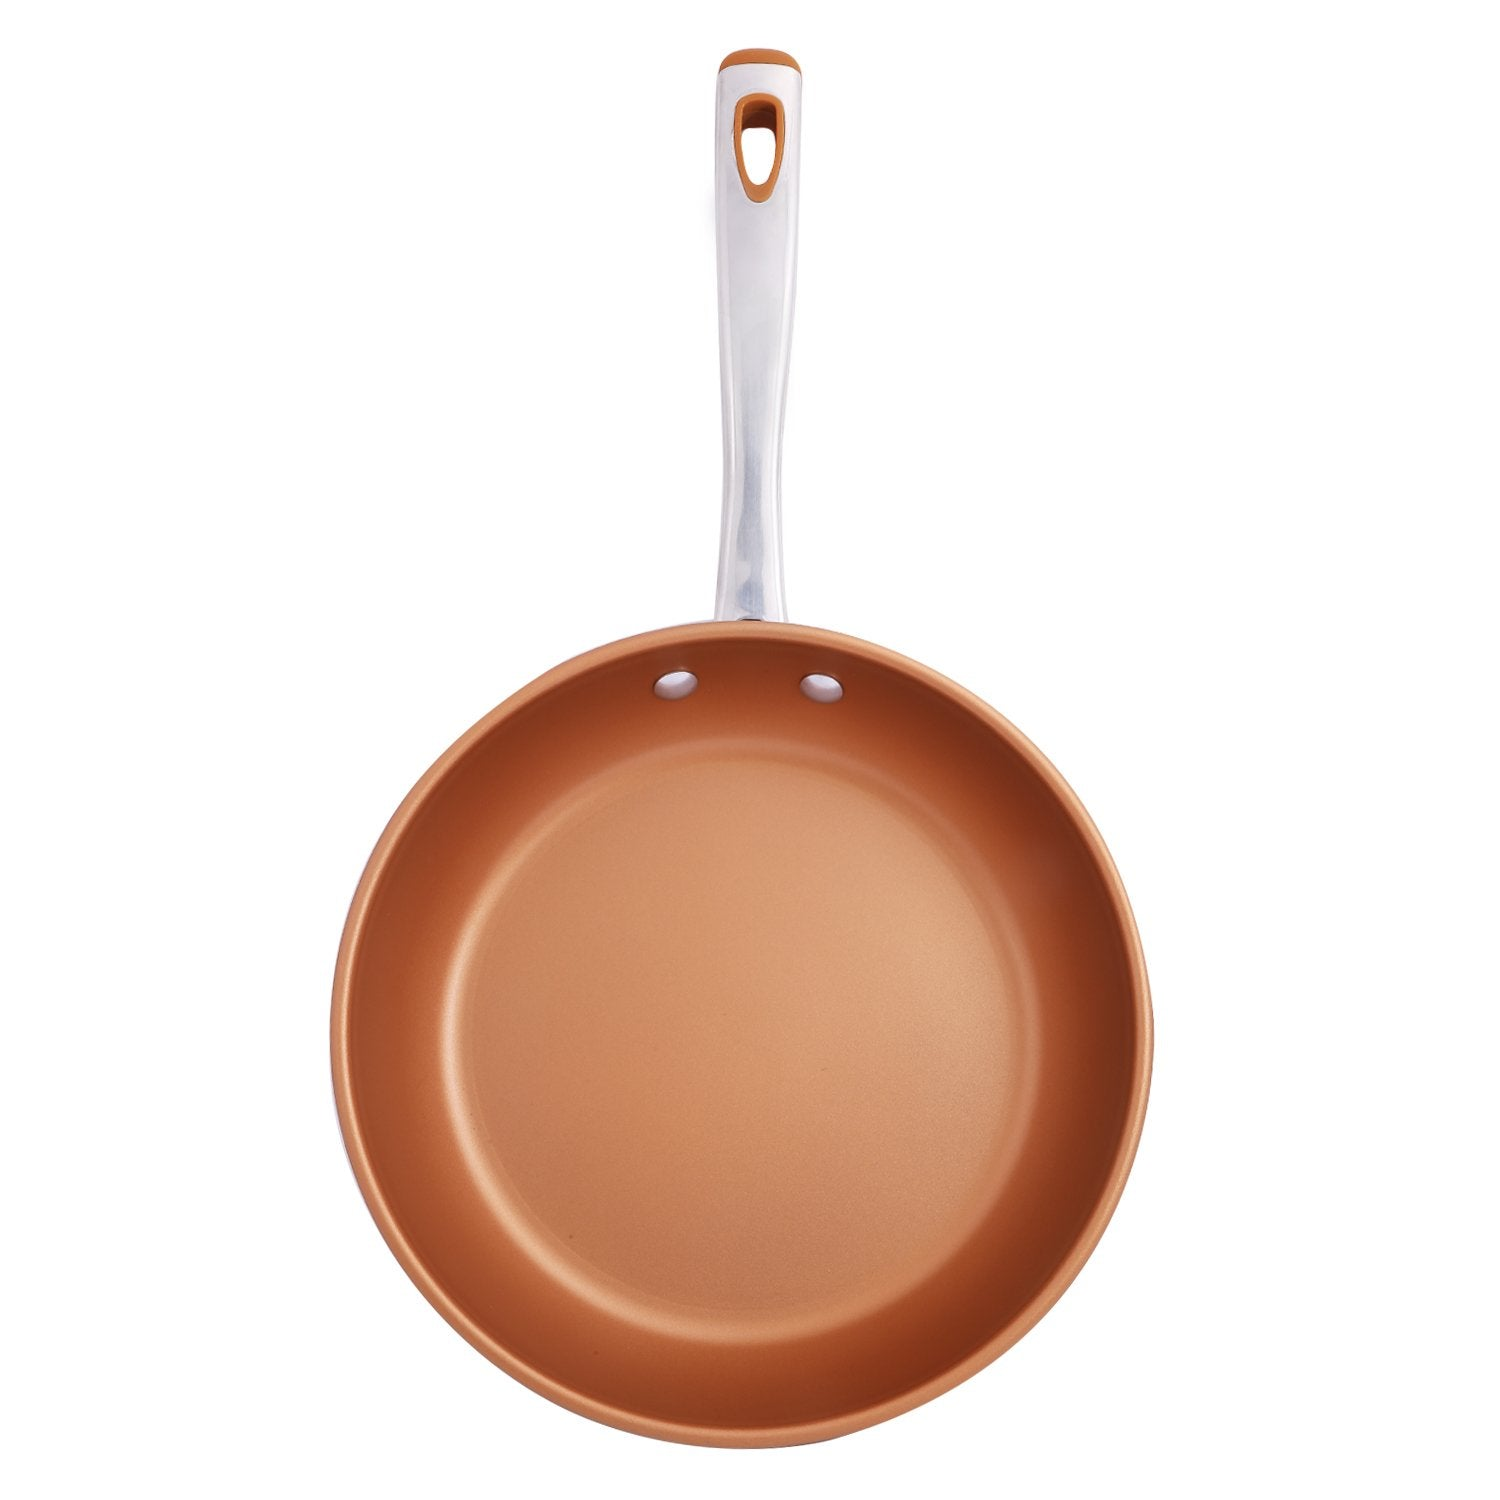 Prism Non-Stick Frypan 20cm, Copper [Induction & Gas Compatible] - Pots and Pans